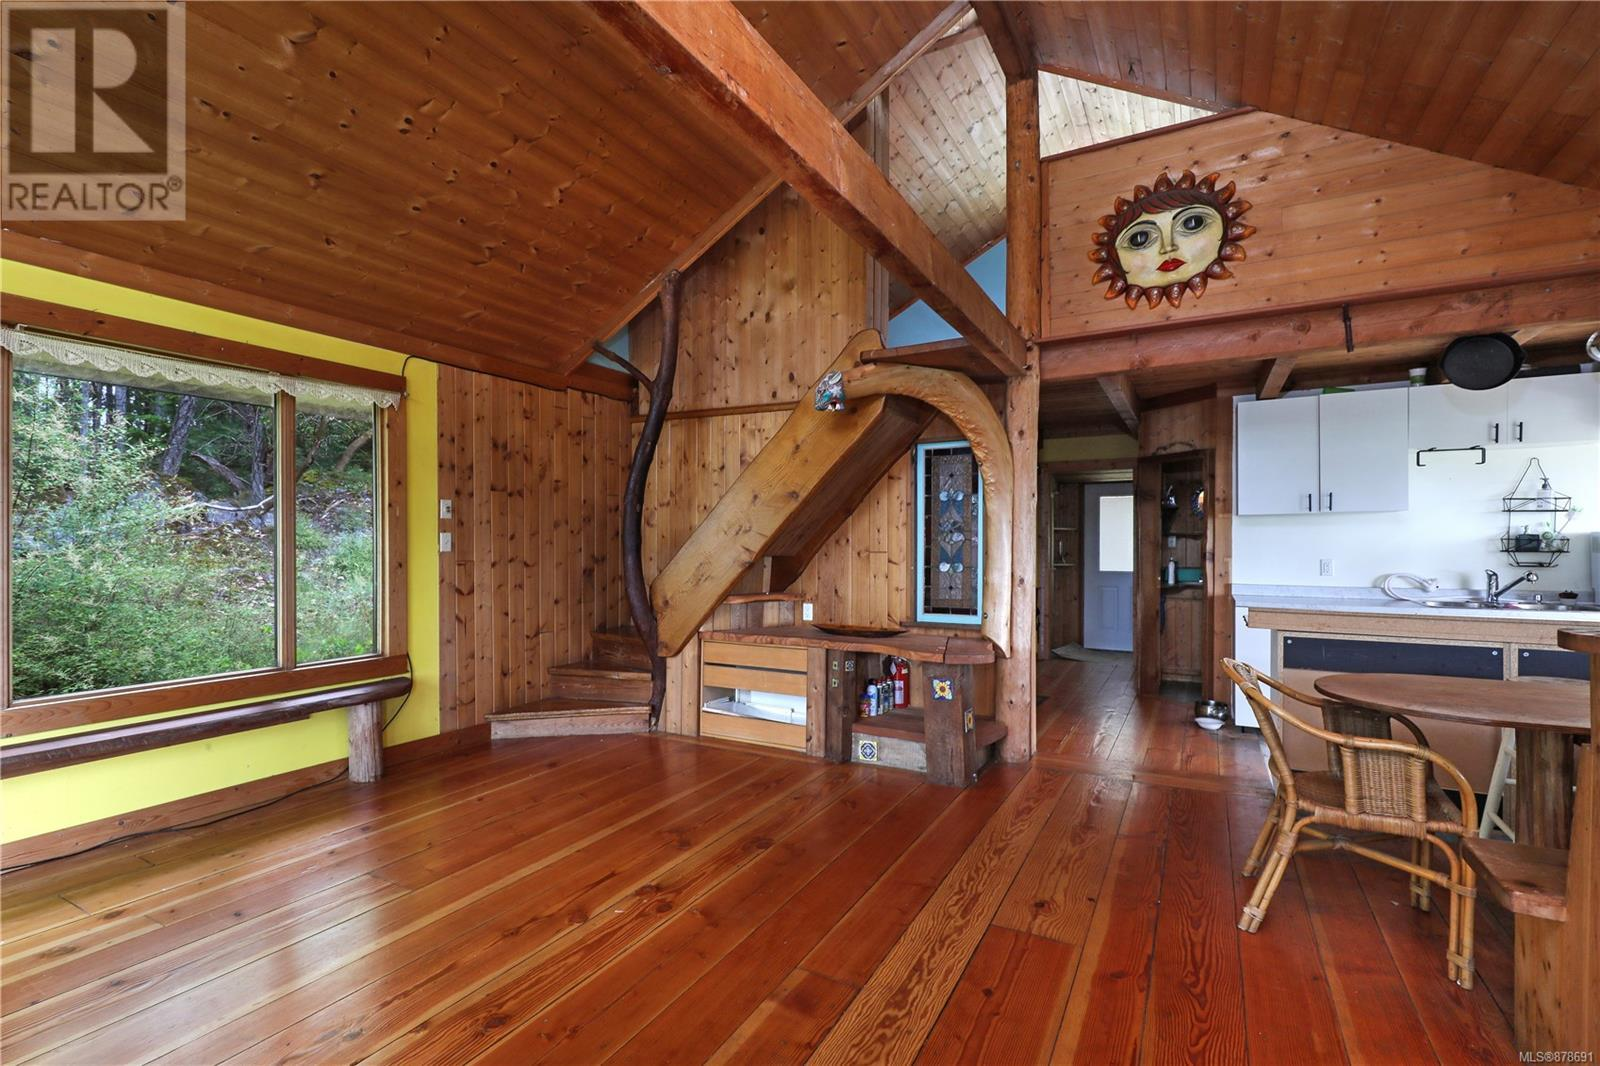 MLS® #878691 - Cortes Island House For sale Image #46